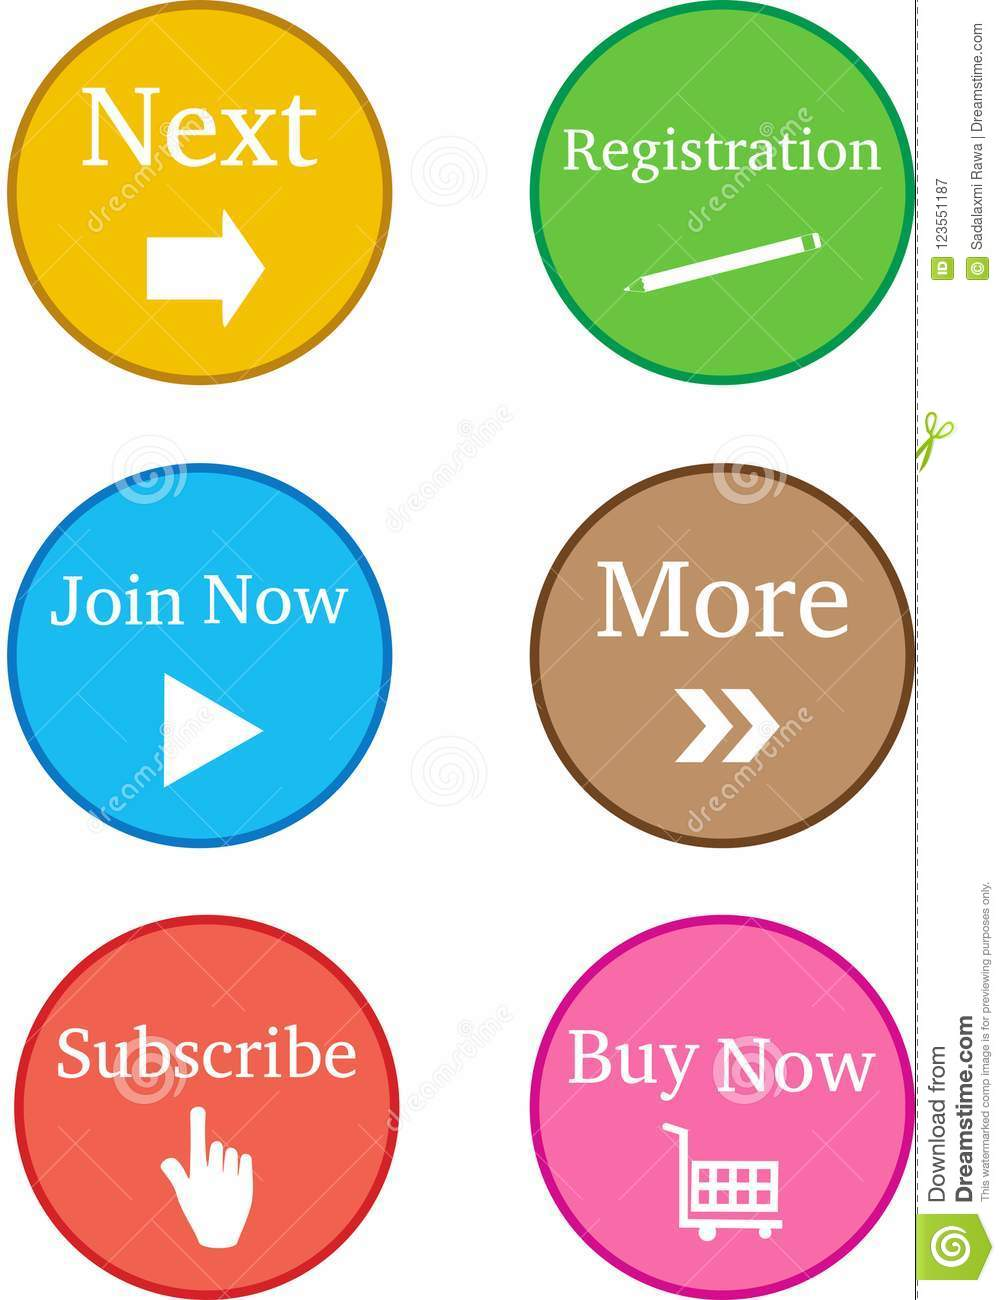 Colourful Register Now Buttons